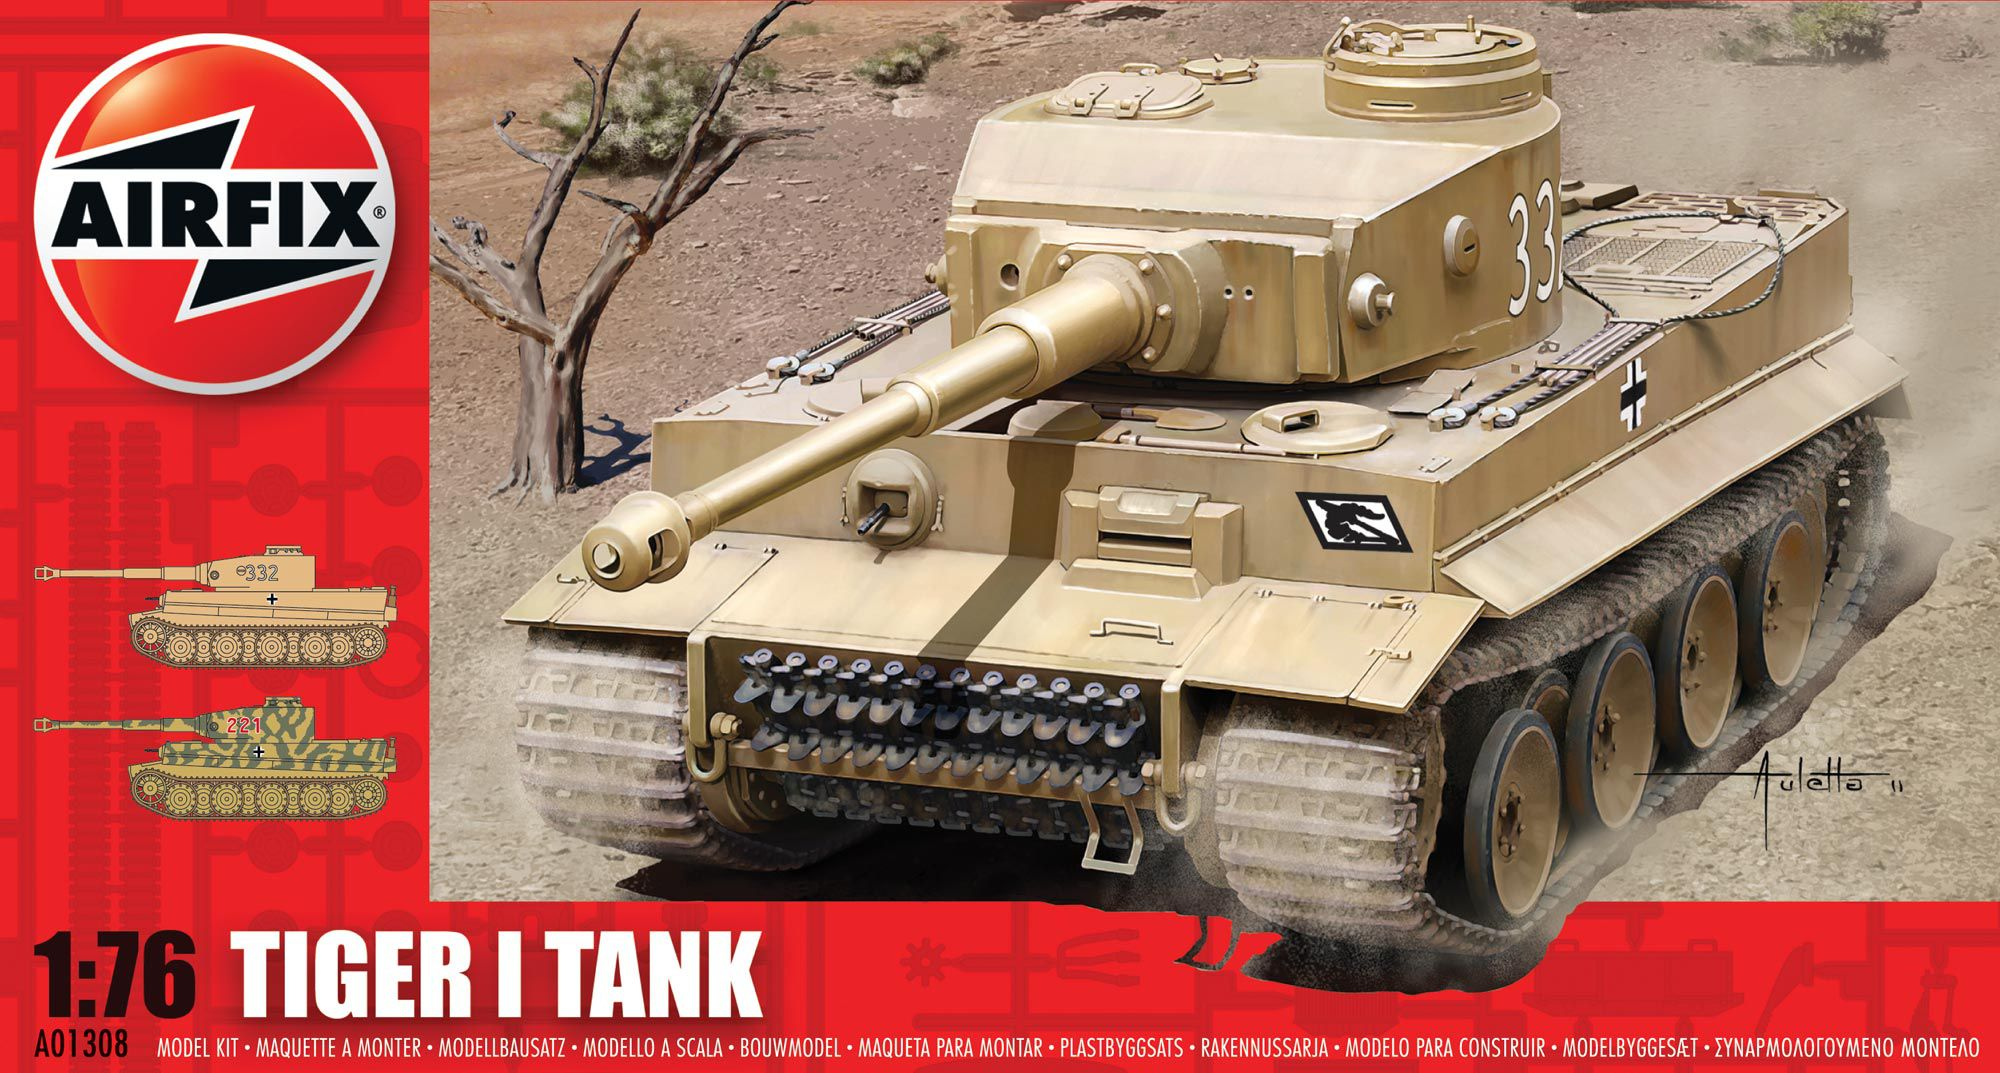 Picture Gallery for Airfix A01308 Tiger I Tank 1:76